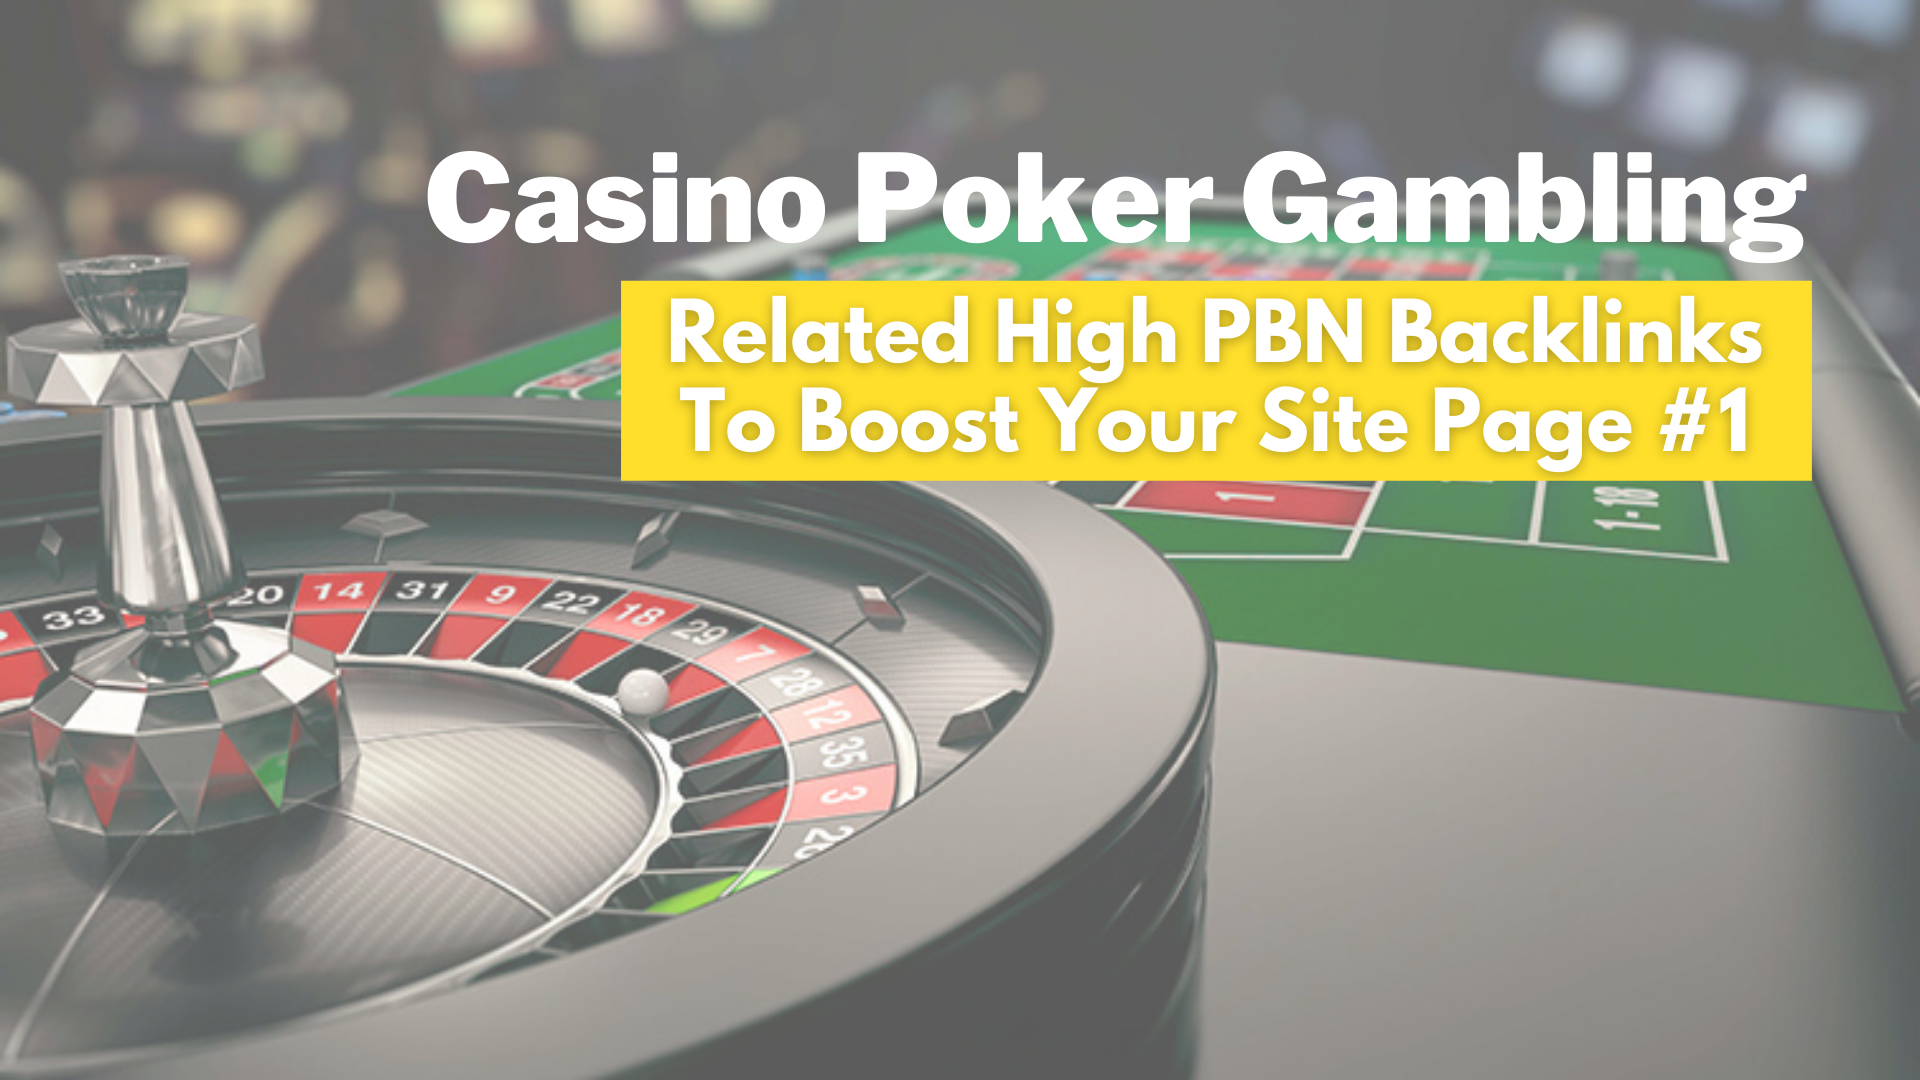 5000 Casino Poker Gambling Related High PBN Backlinks To Boost Your Site Page 1